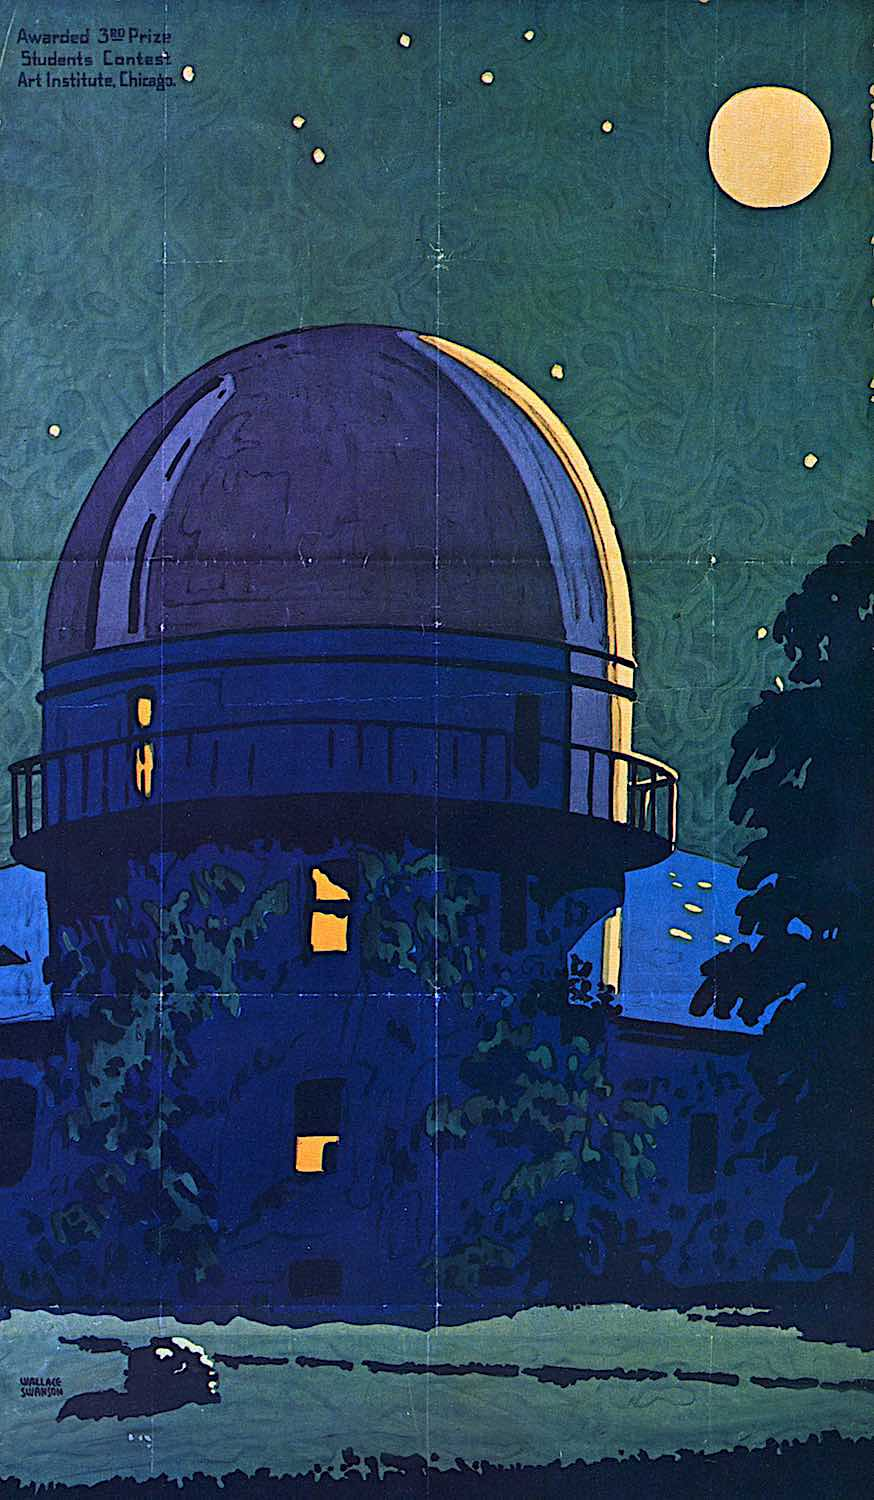 a Wallace Swanson illustration 1925, an observatory building at night